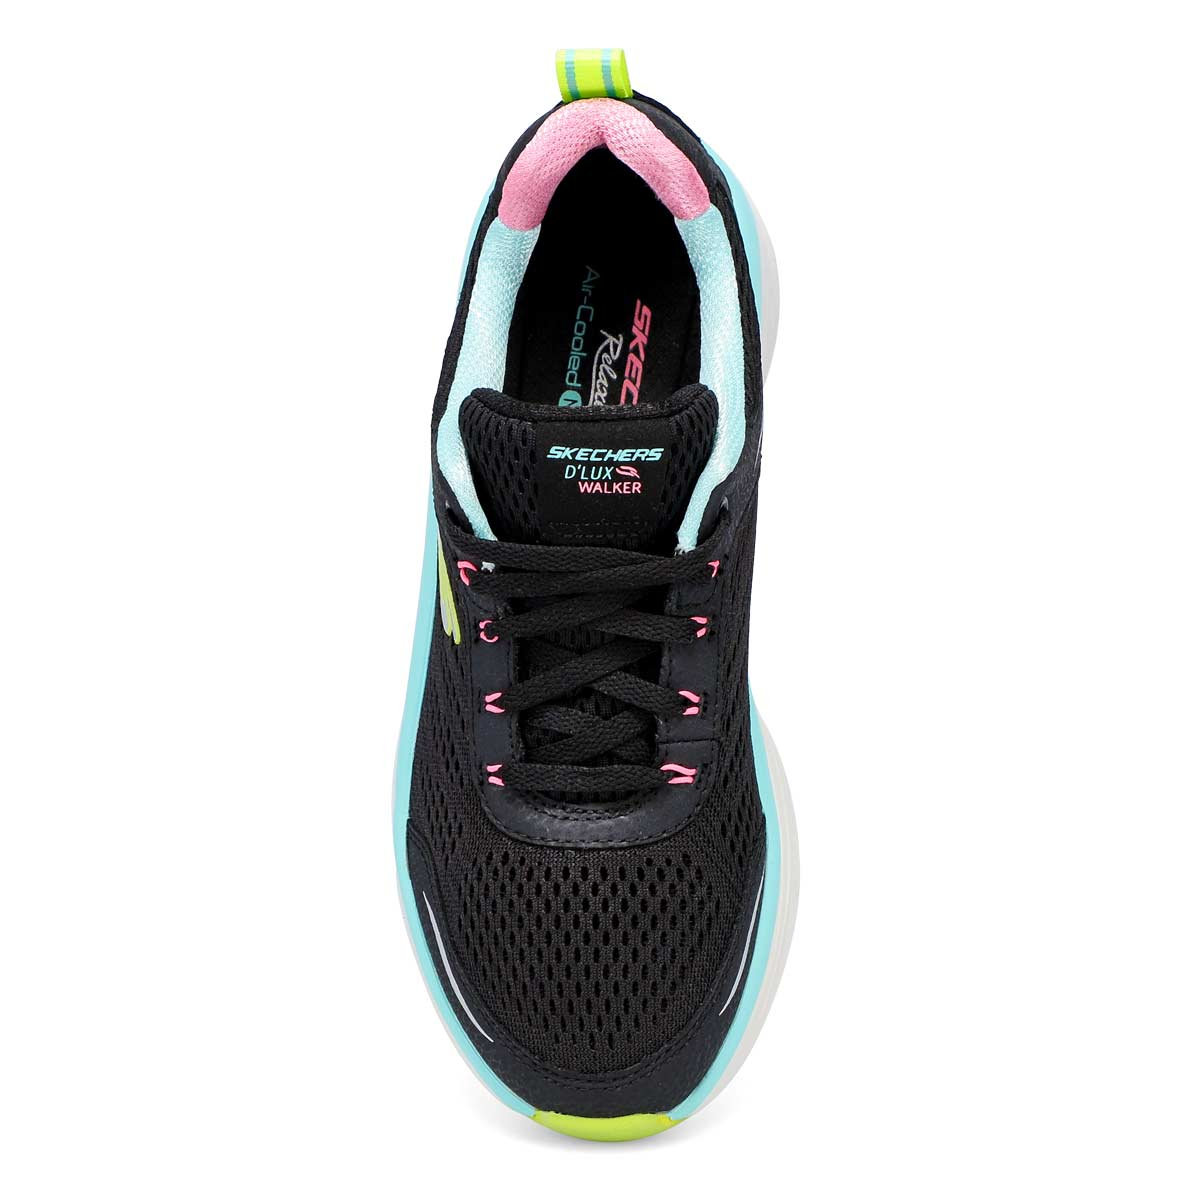 Women's D'Lux Walker Infinite Motion Sneaker - Blk